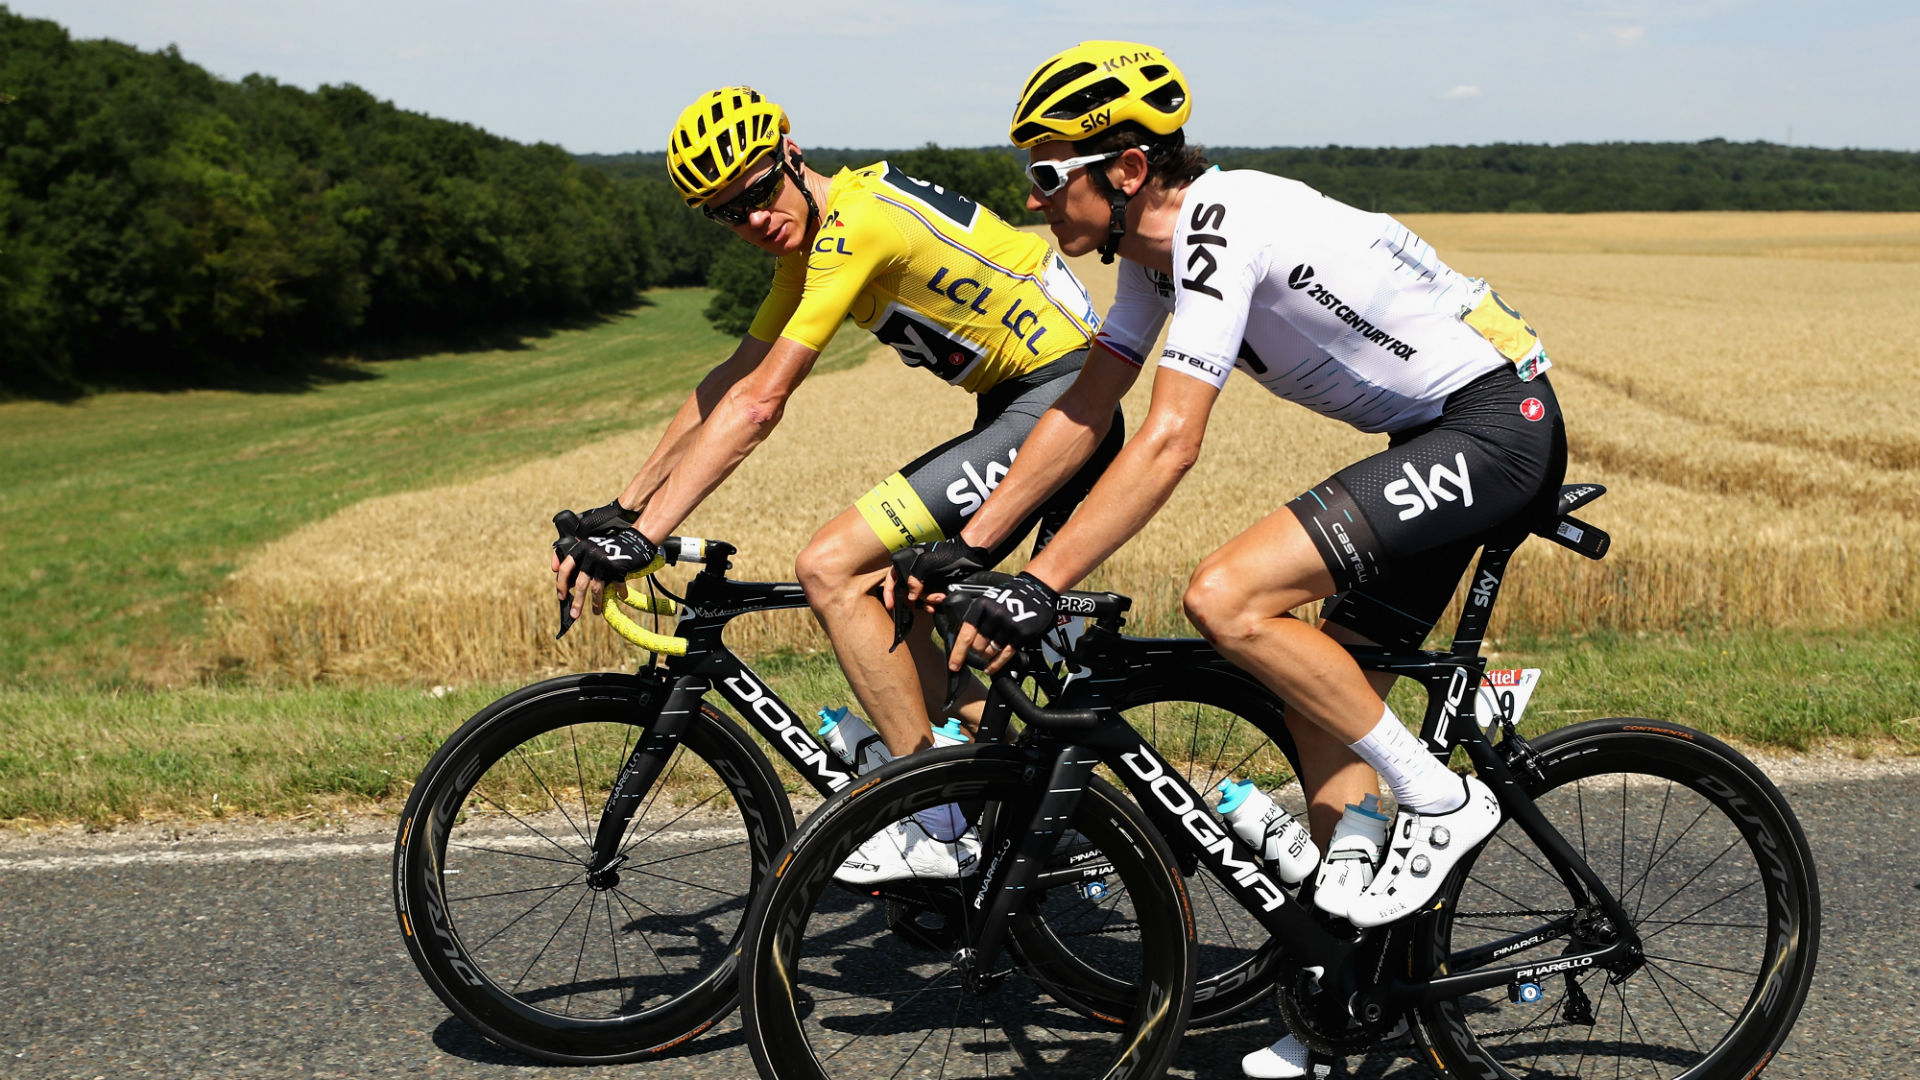 Reigning Grand Tour champions Chris Froome and Geraint Thomas expect to challenge again in 2019, despite Sky's looming departure.